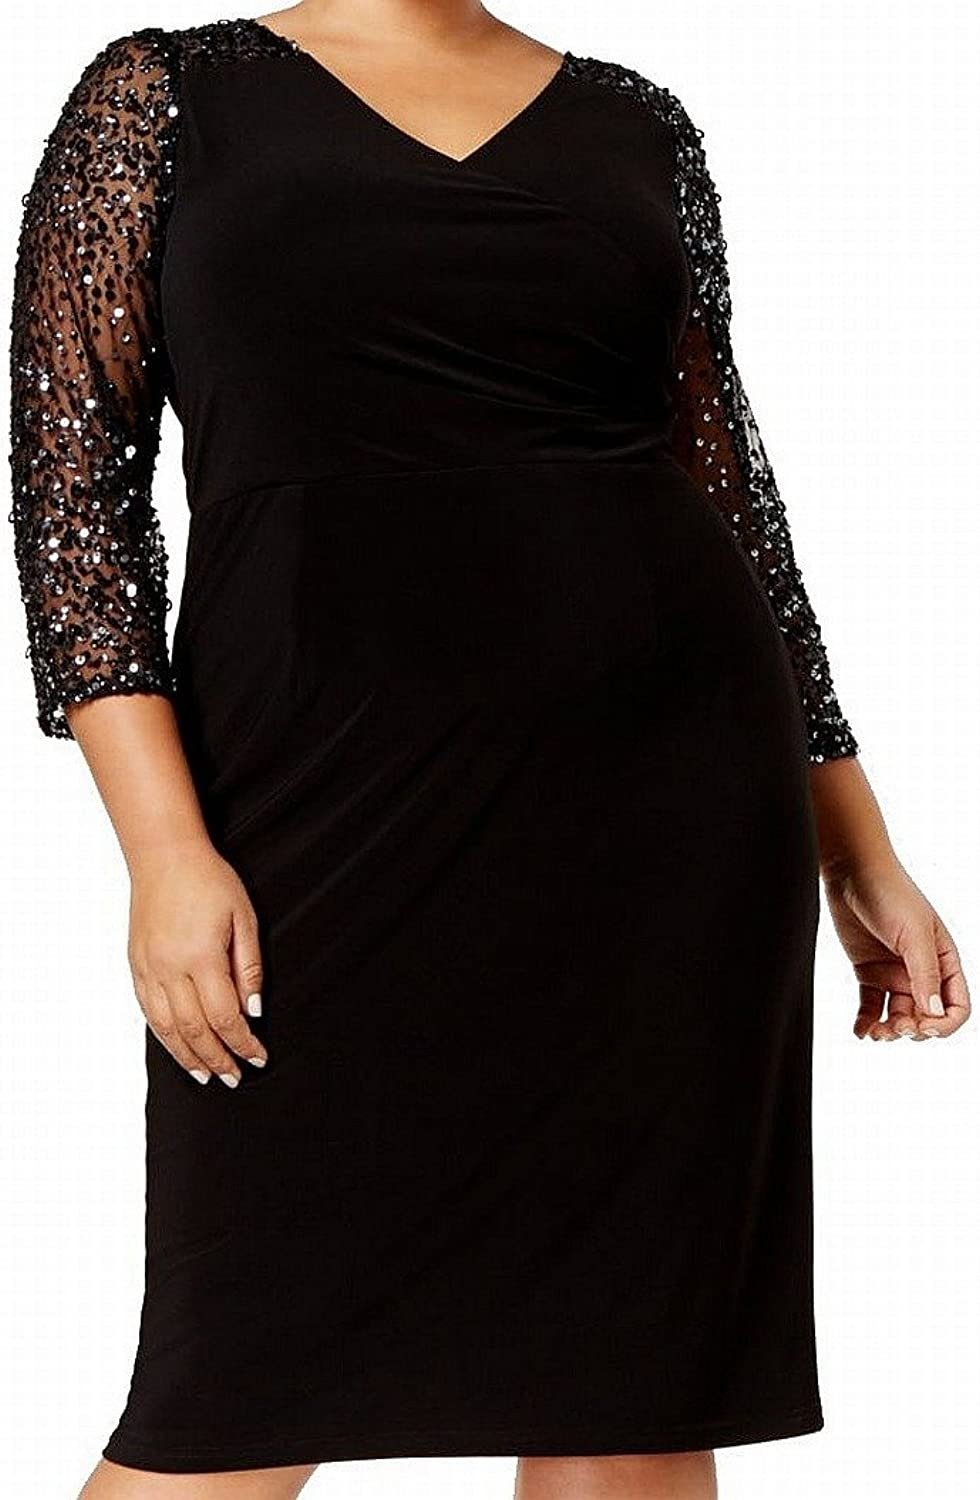 Adrianna Papell Womens 3 4 Sleeves KneeLength Cocktail Dress